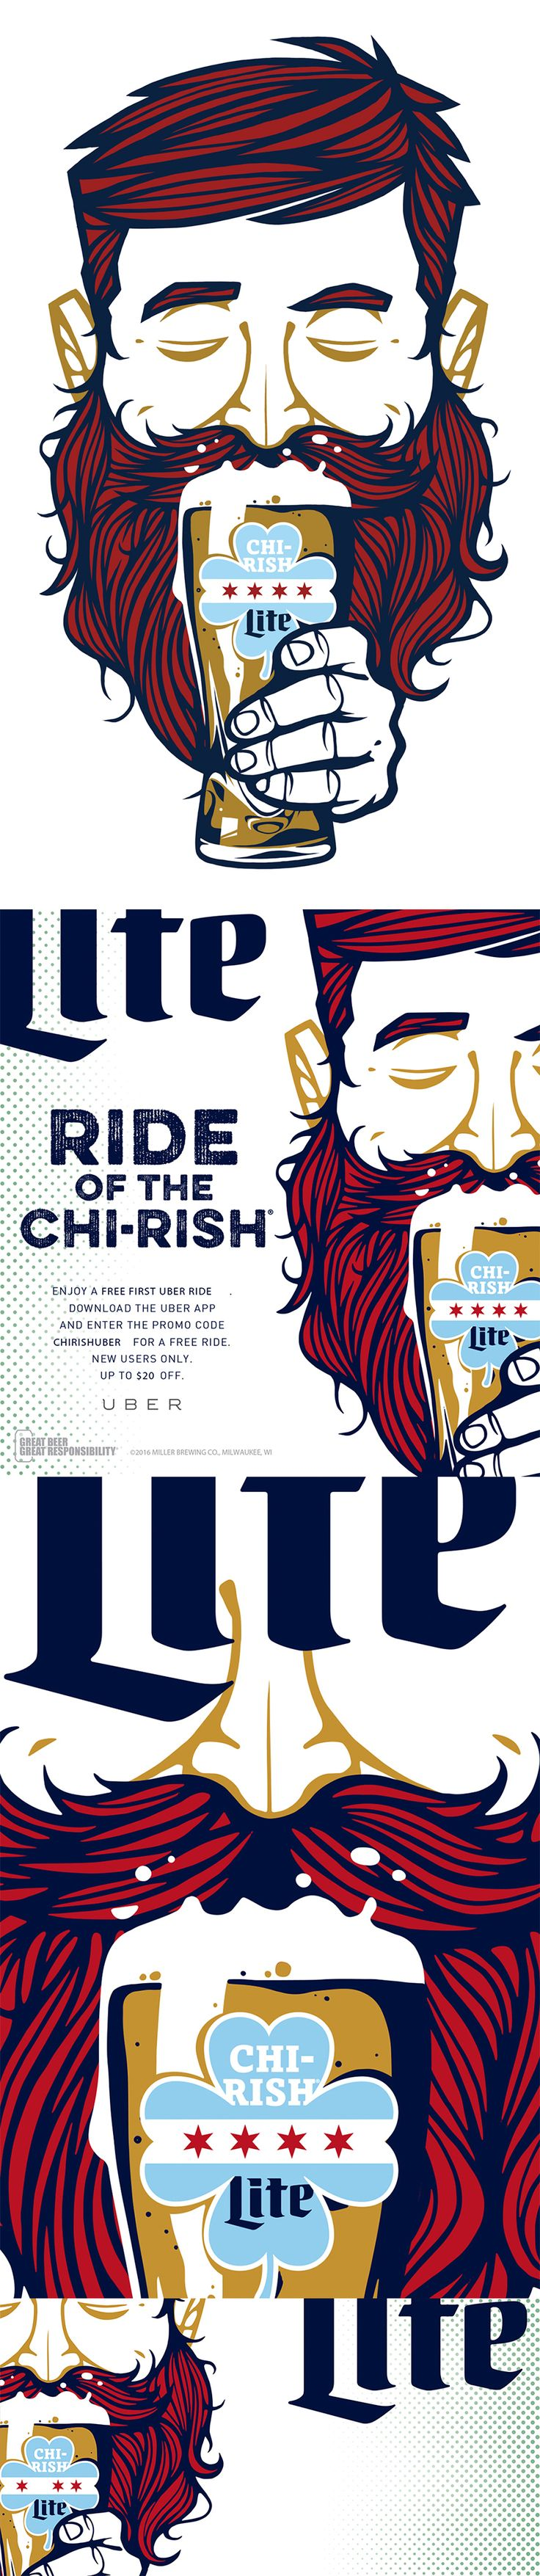 Chirish Beer Miller Lite on Behance